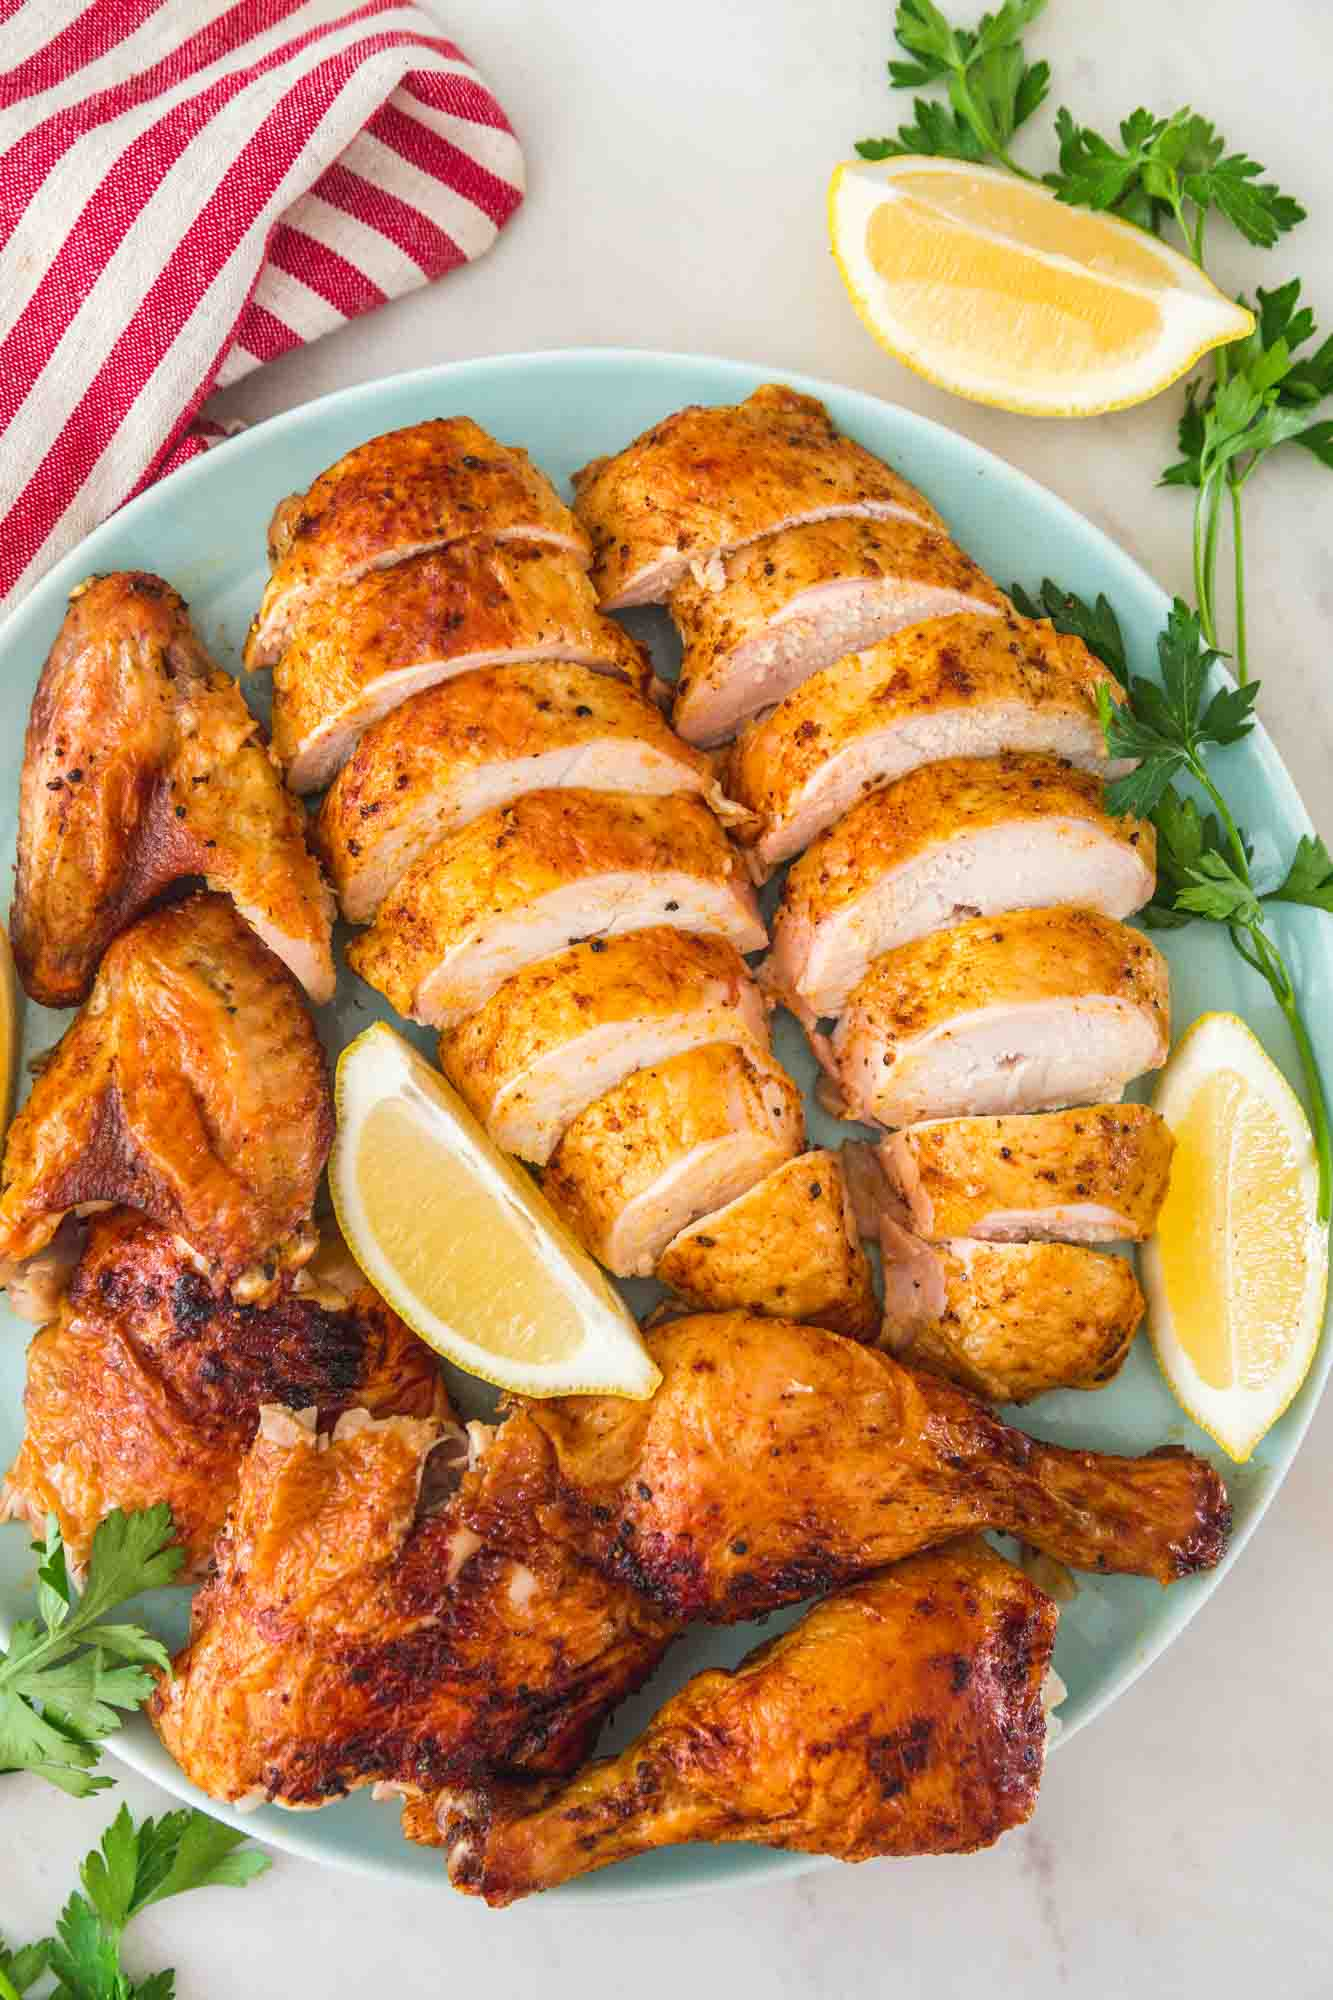 Carved chicken served on a platter with lemon wedges and fresh parsley leaves